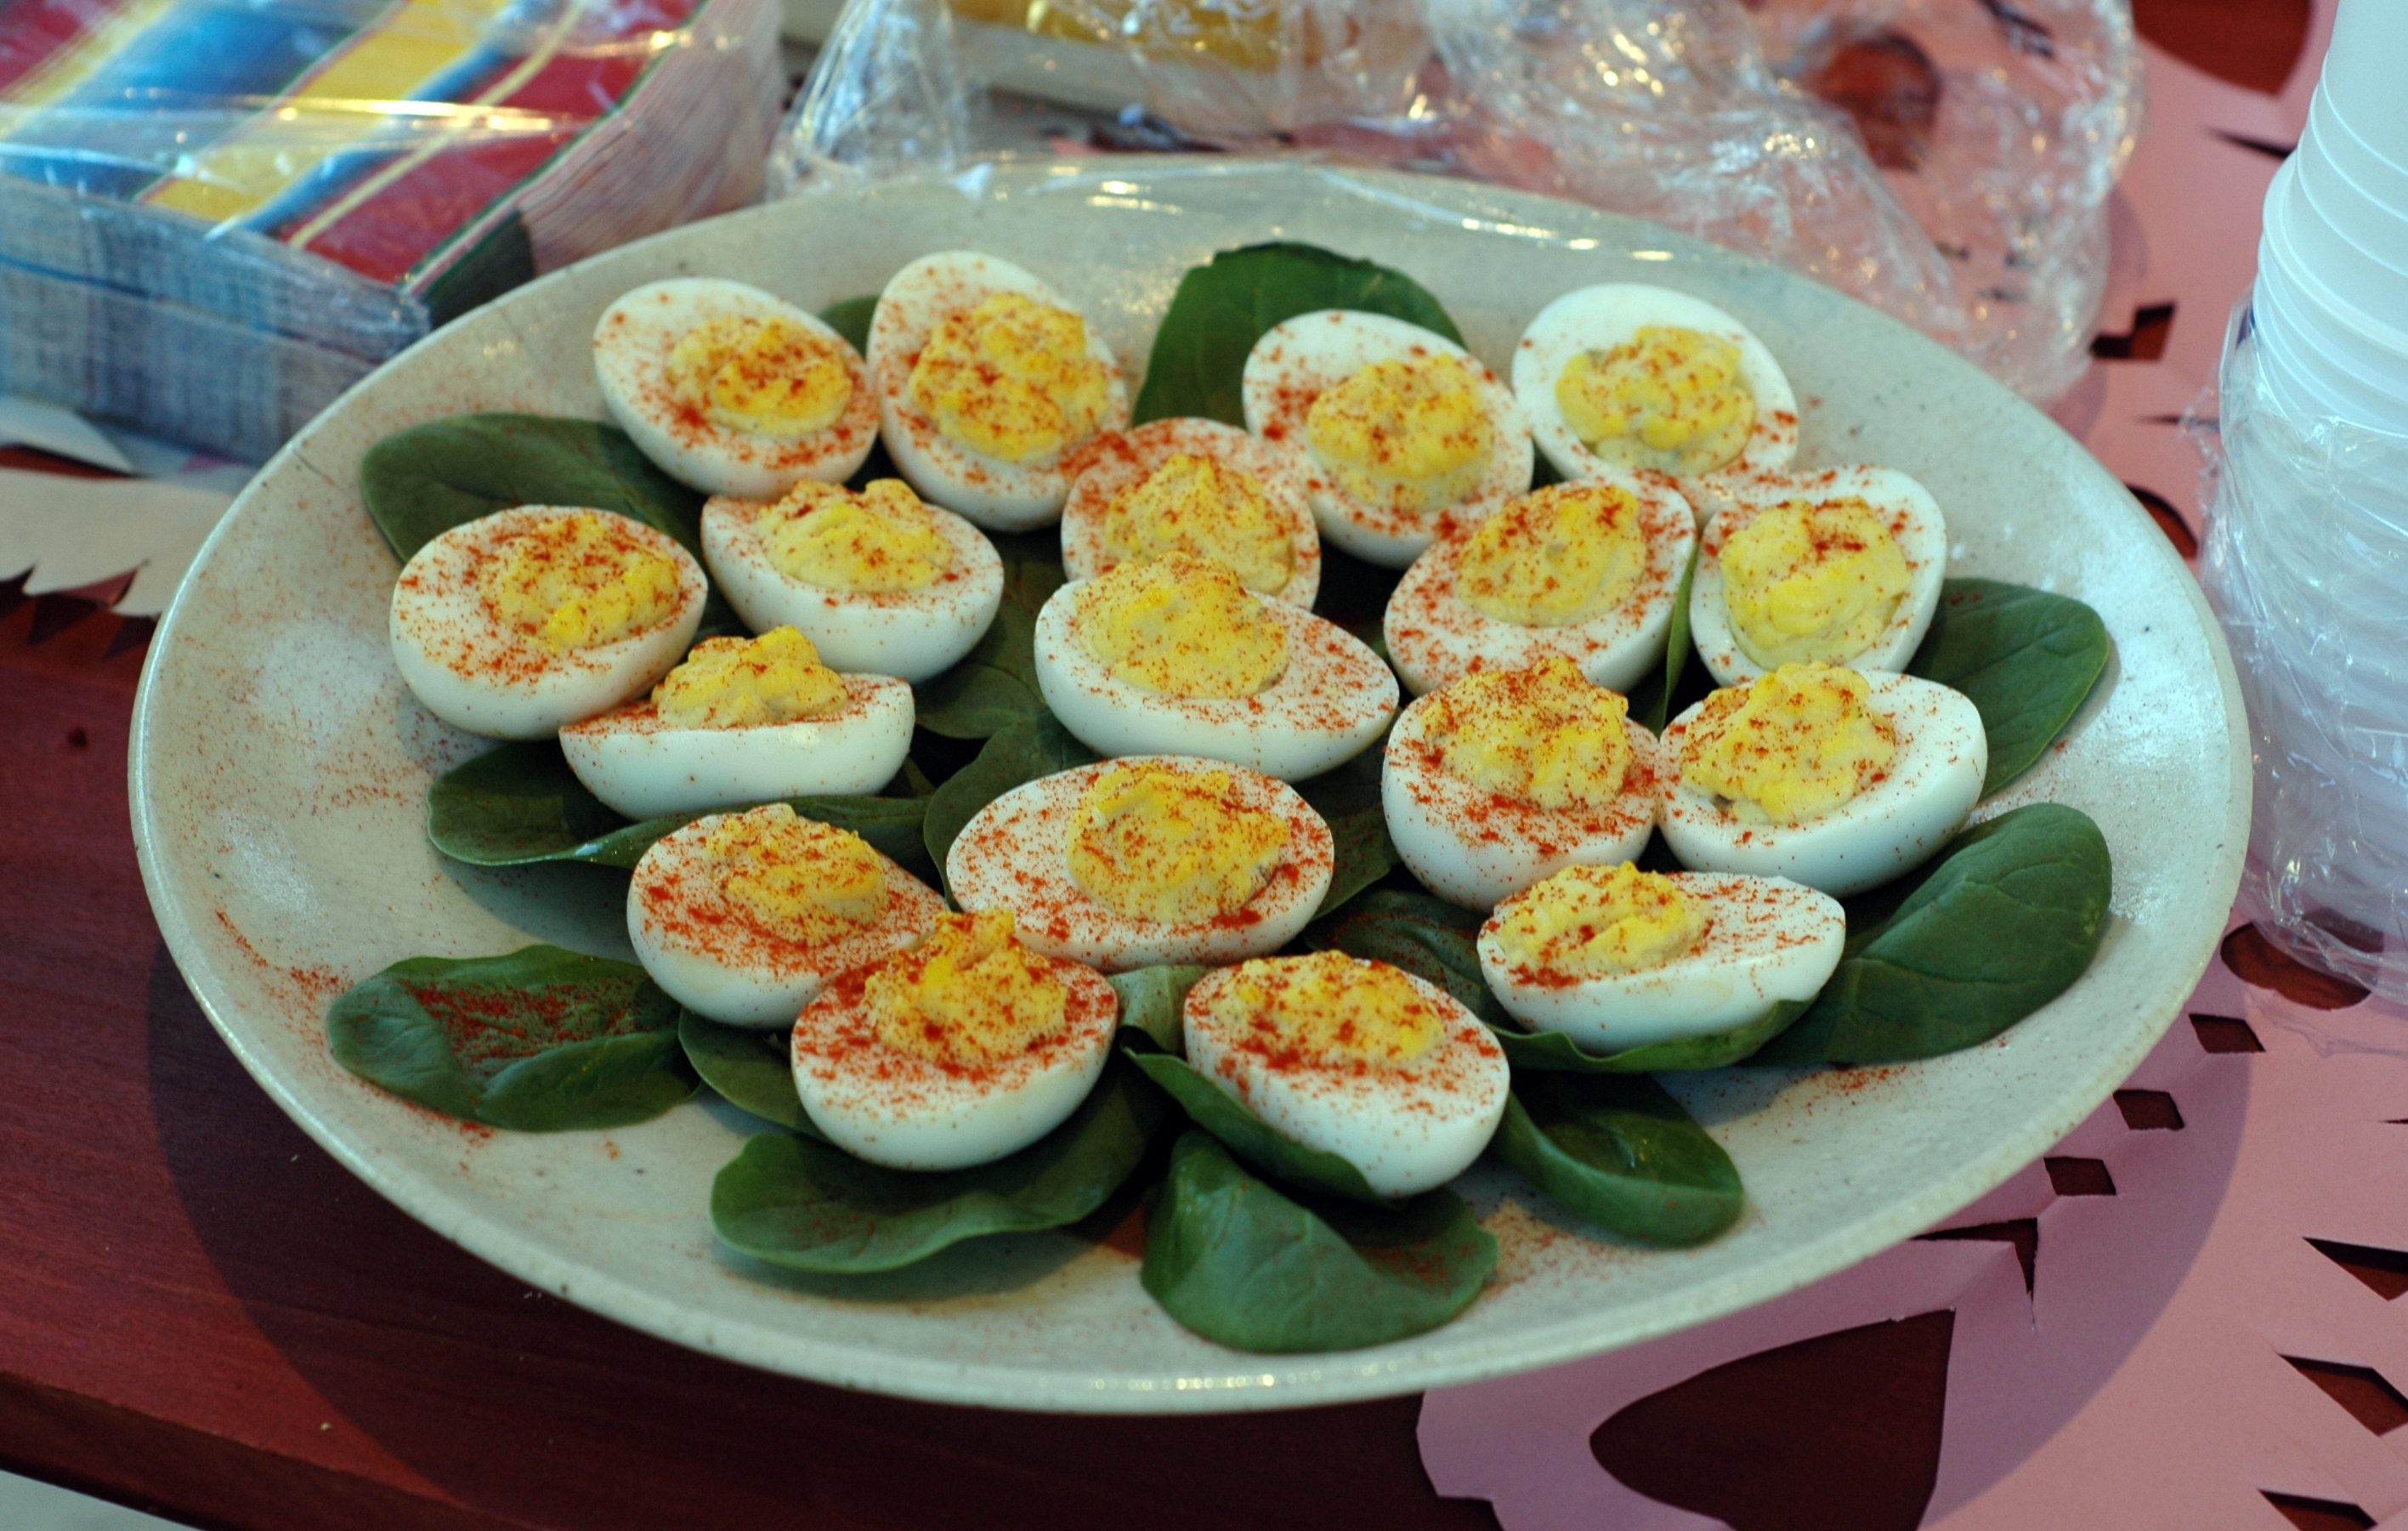 File:Deviled Eggs - 3-23-08.jpg - Wikimedia Commons